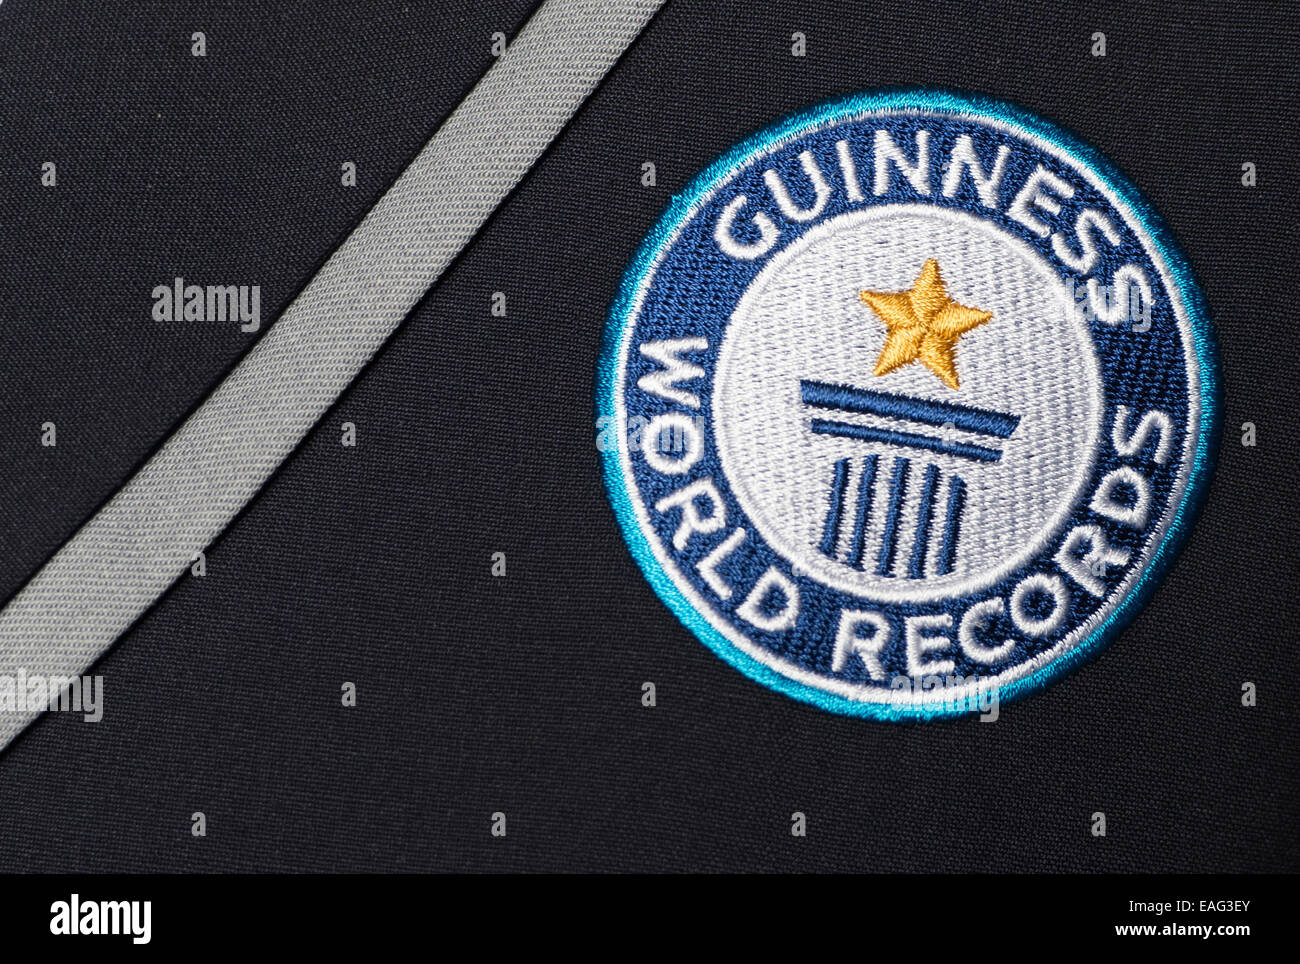 Berlin, Germany. 14th Nov, 2014. A badge with 'Guinness World Records' is pictured on a jacket in Berlin, - Stock Image